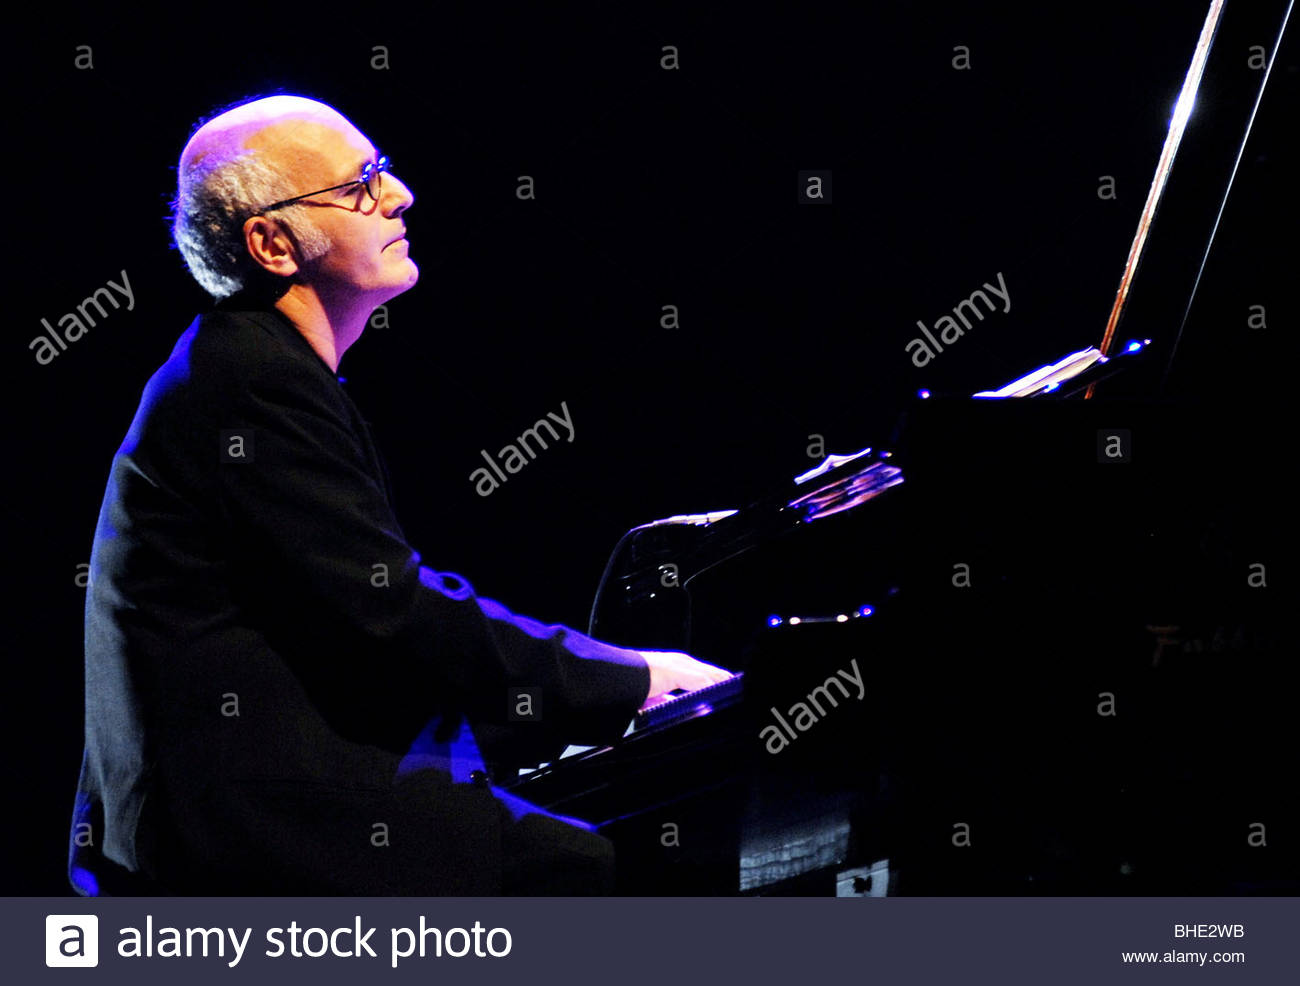 ludovico einaudi Stock Photo